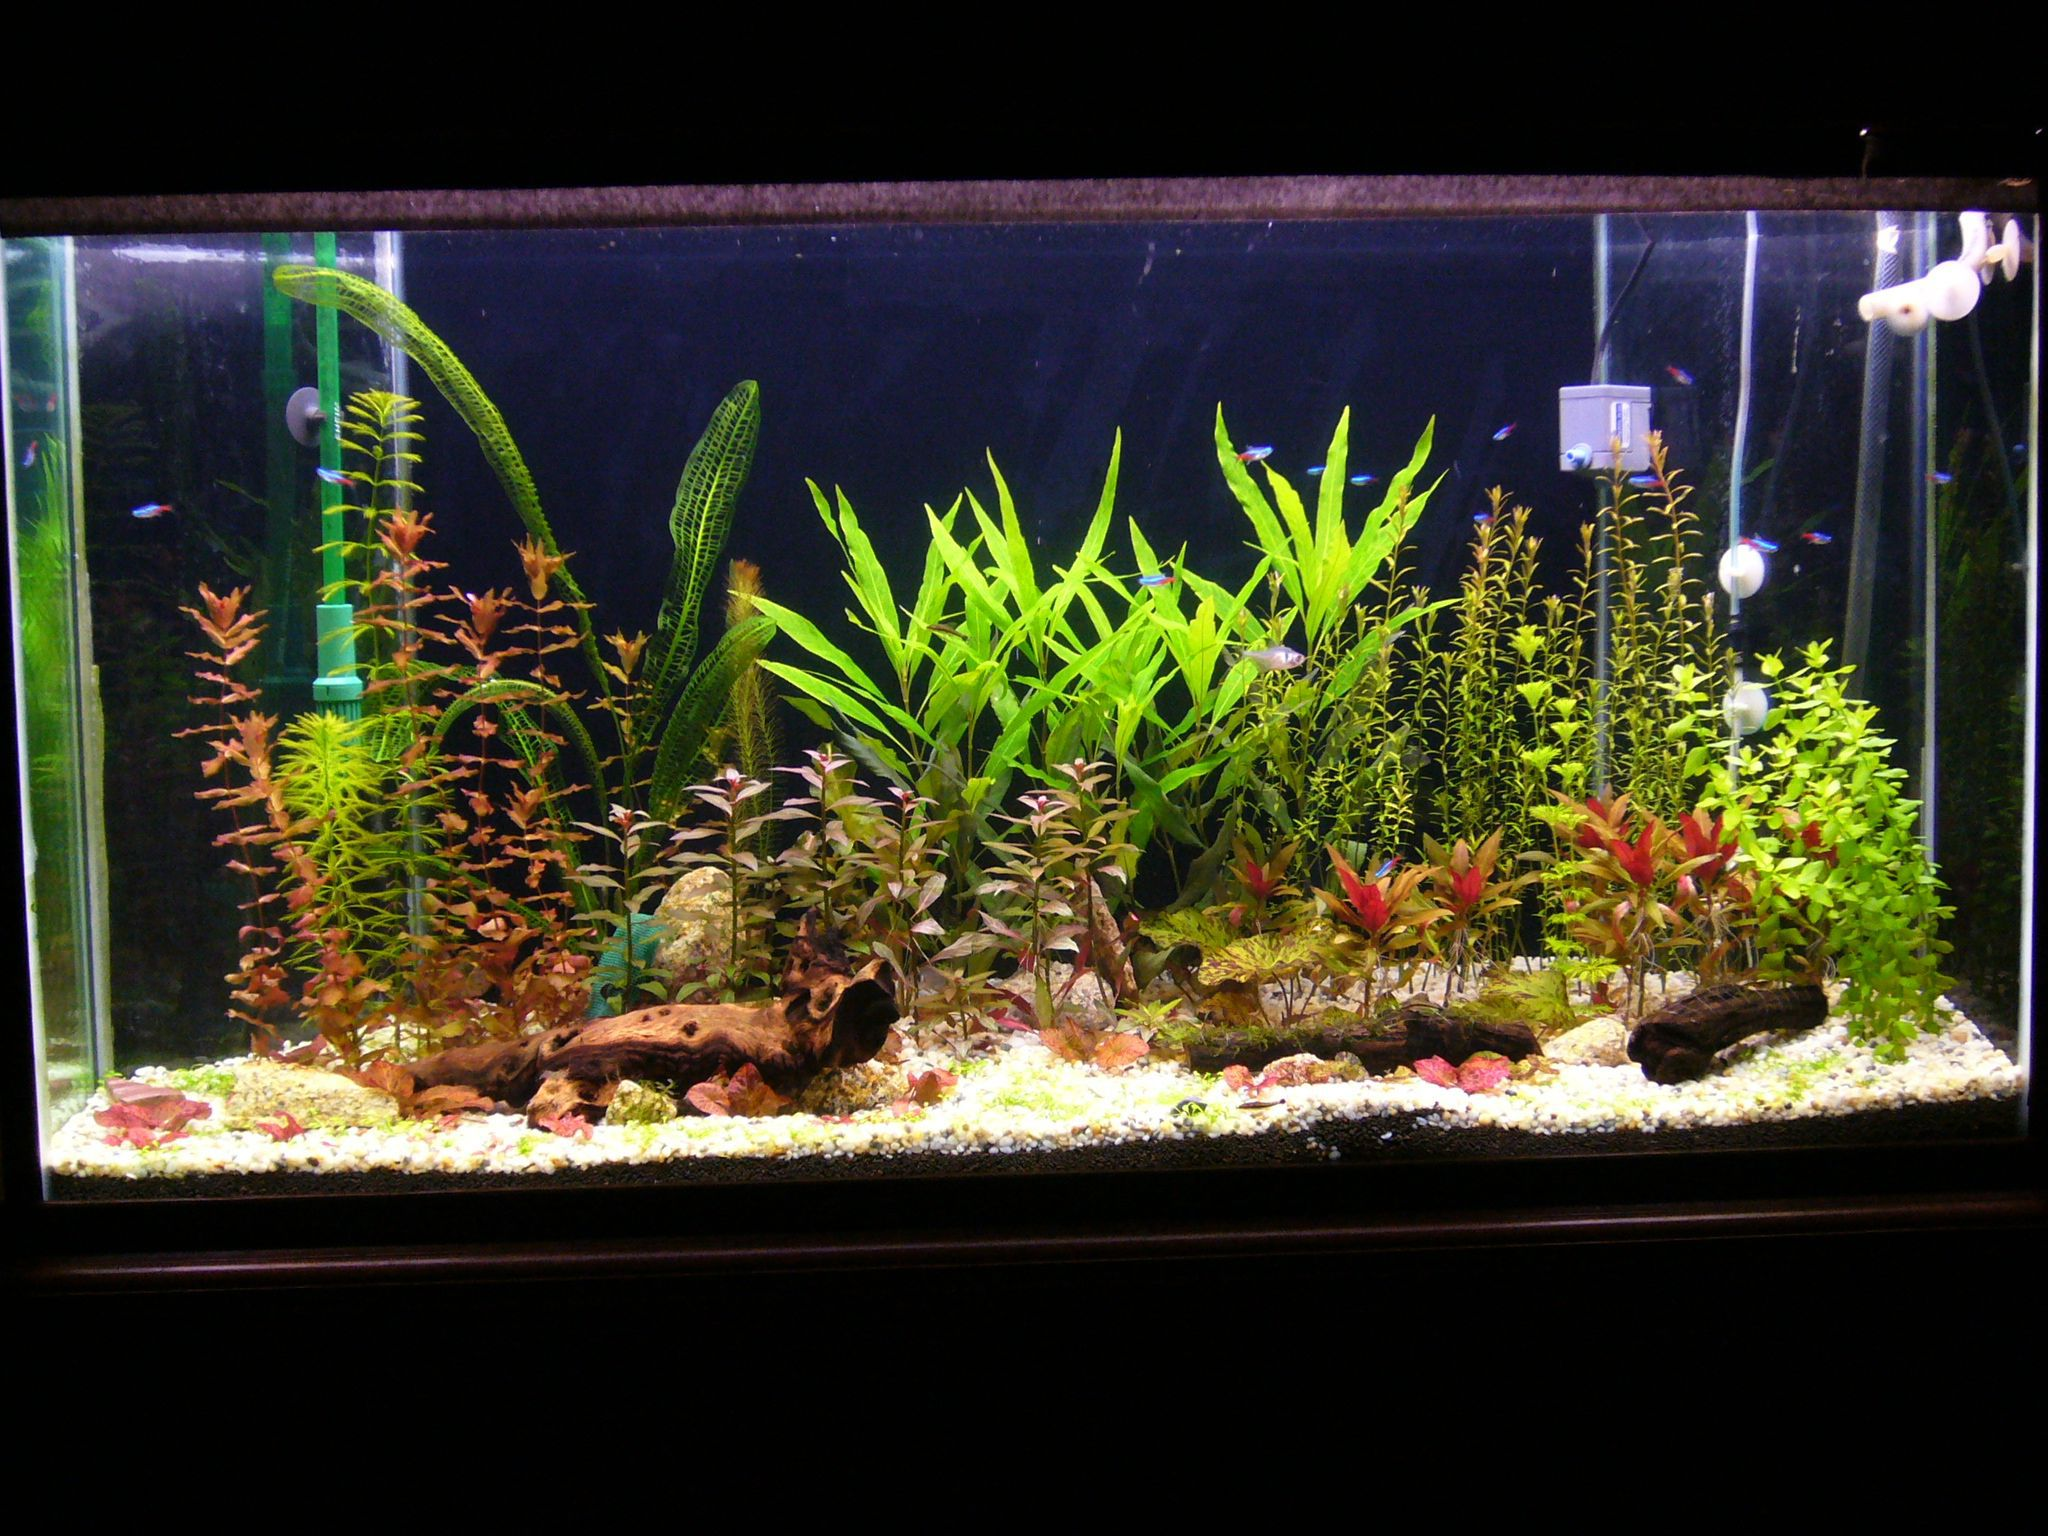 aquarium plants real or artificial. Black Bedroom Furniture Sets. Home Design Ideas